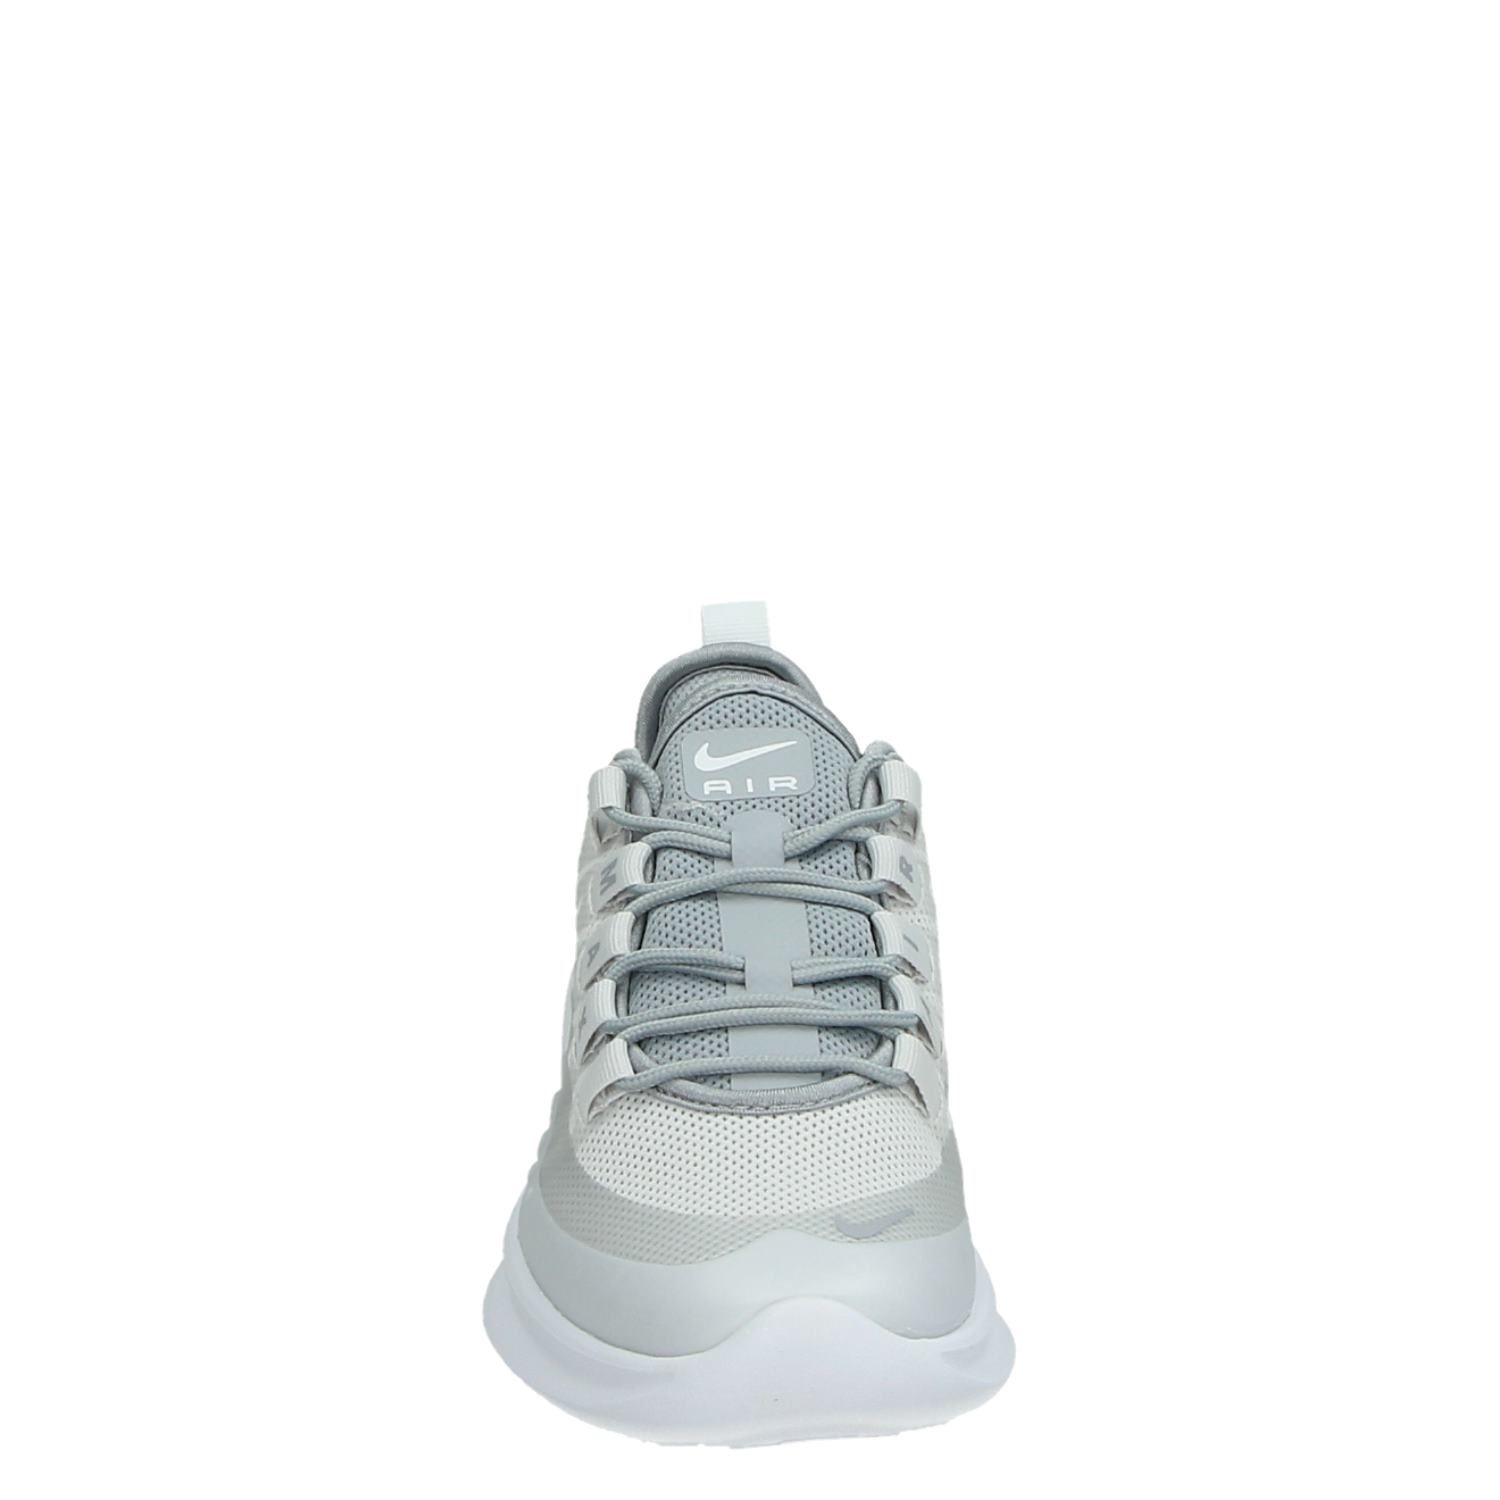 f011773d98f Nike Axis Air dames lage sneakers grijs